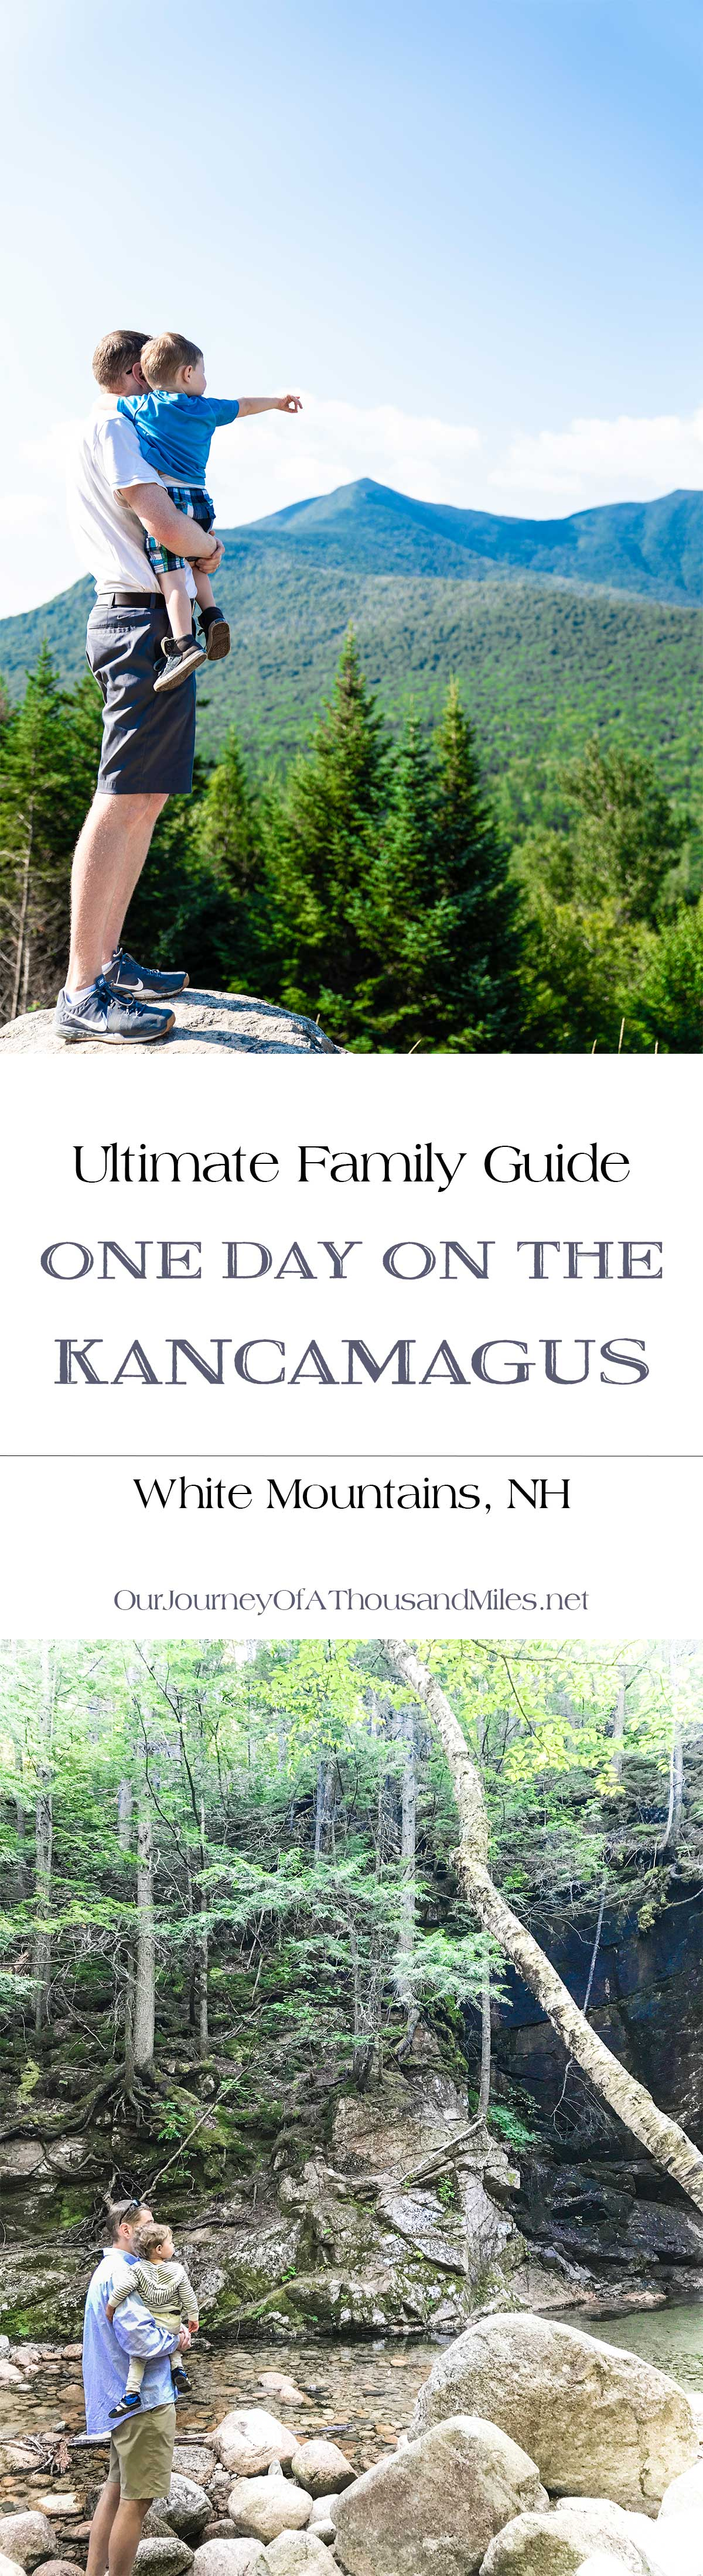 Ultimate-Family-Guide-One-Day-On-The-Kancamagus-White-Mountains-New-Hampshire